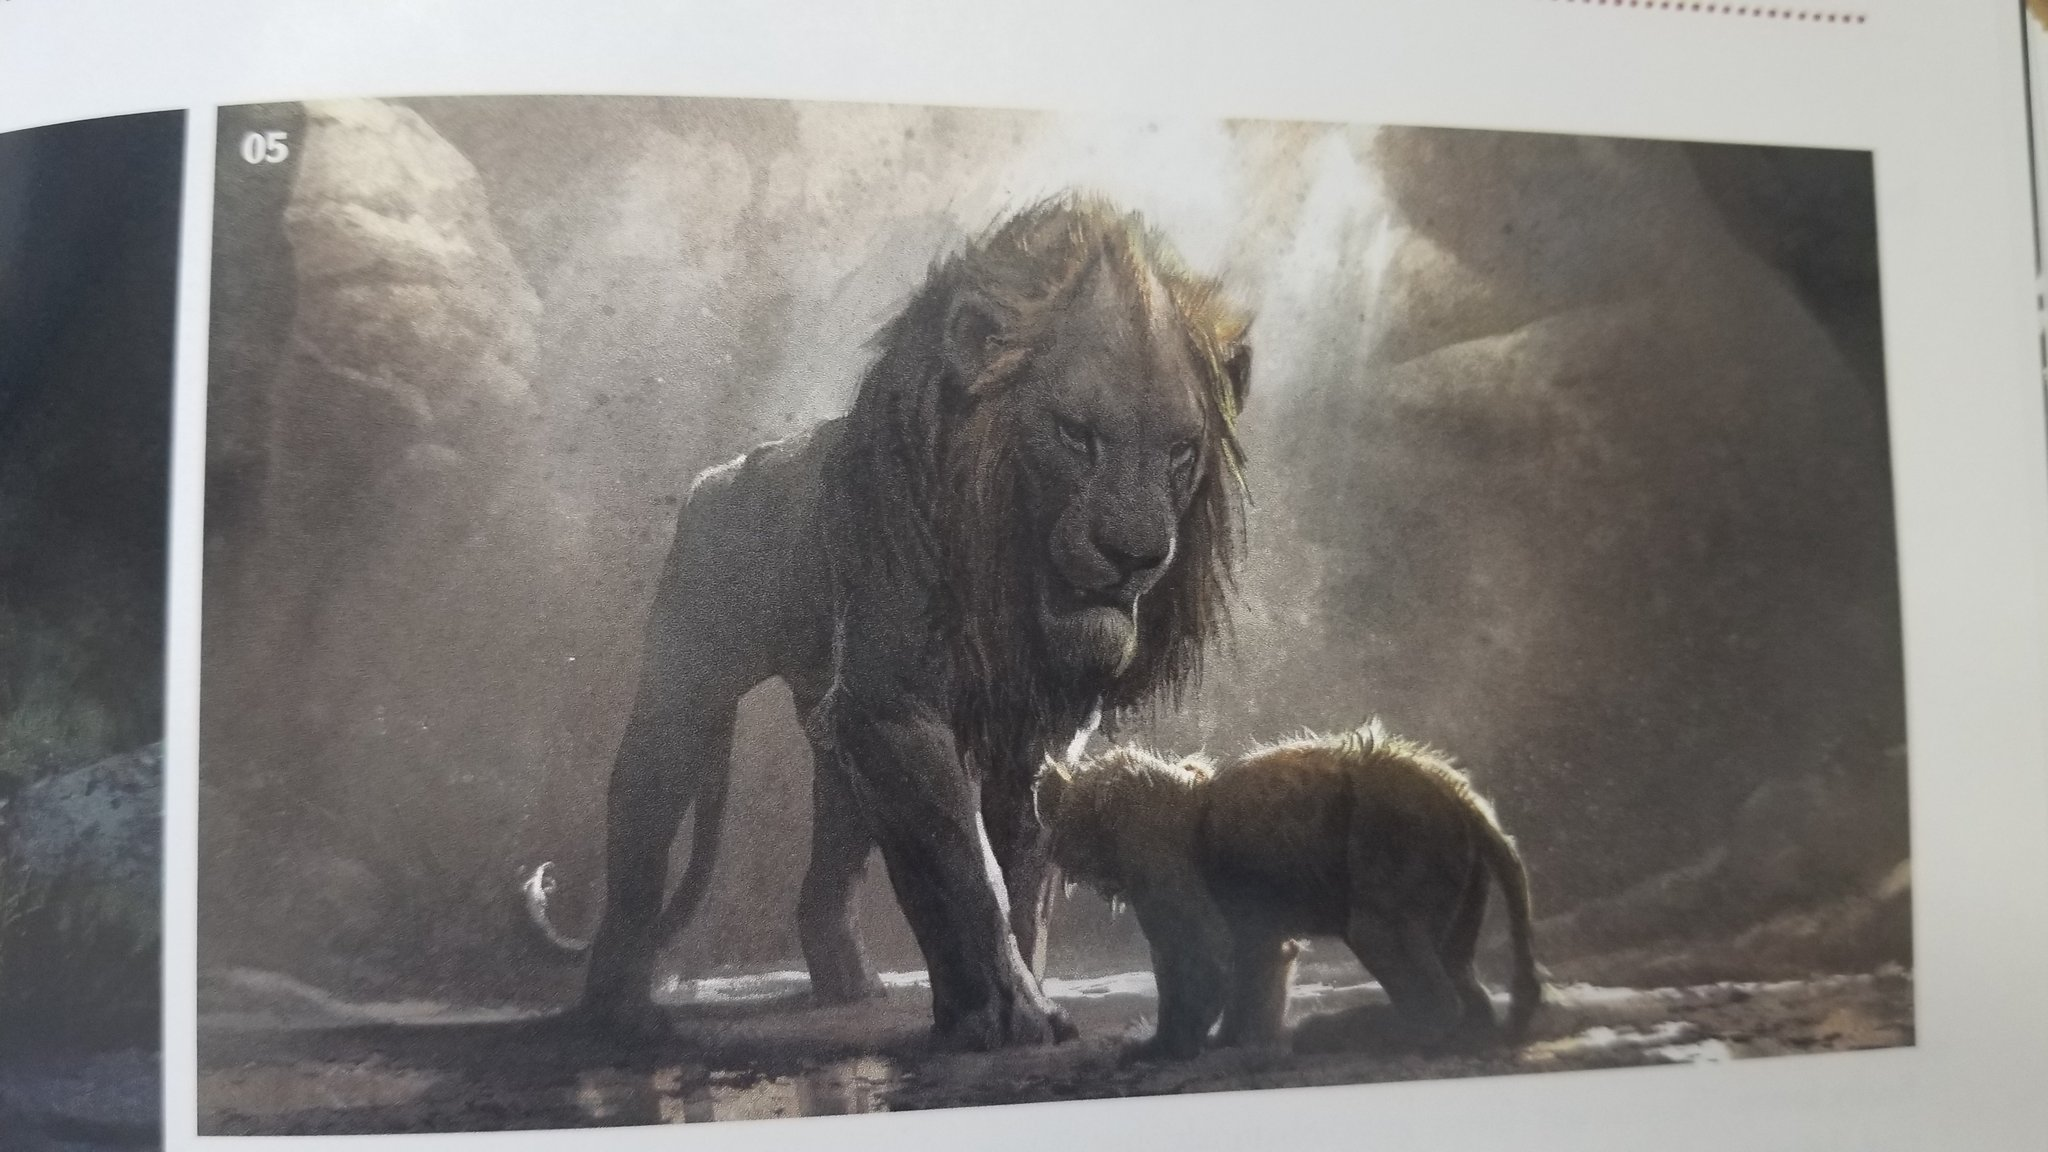 Tartii New Start On Twitter I Think A Majority Of Us Agree That The Lion King Remake Lacked A Lot Of Emotion And Heart However Look At This Concept Art In A